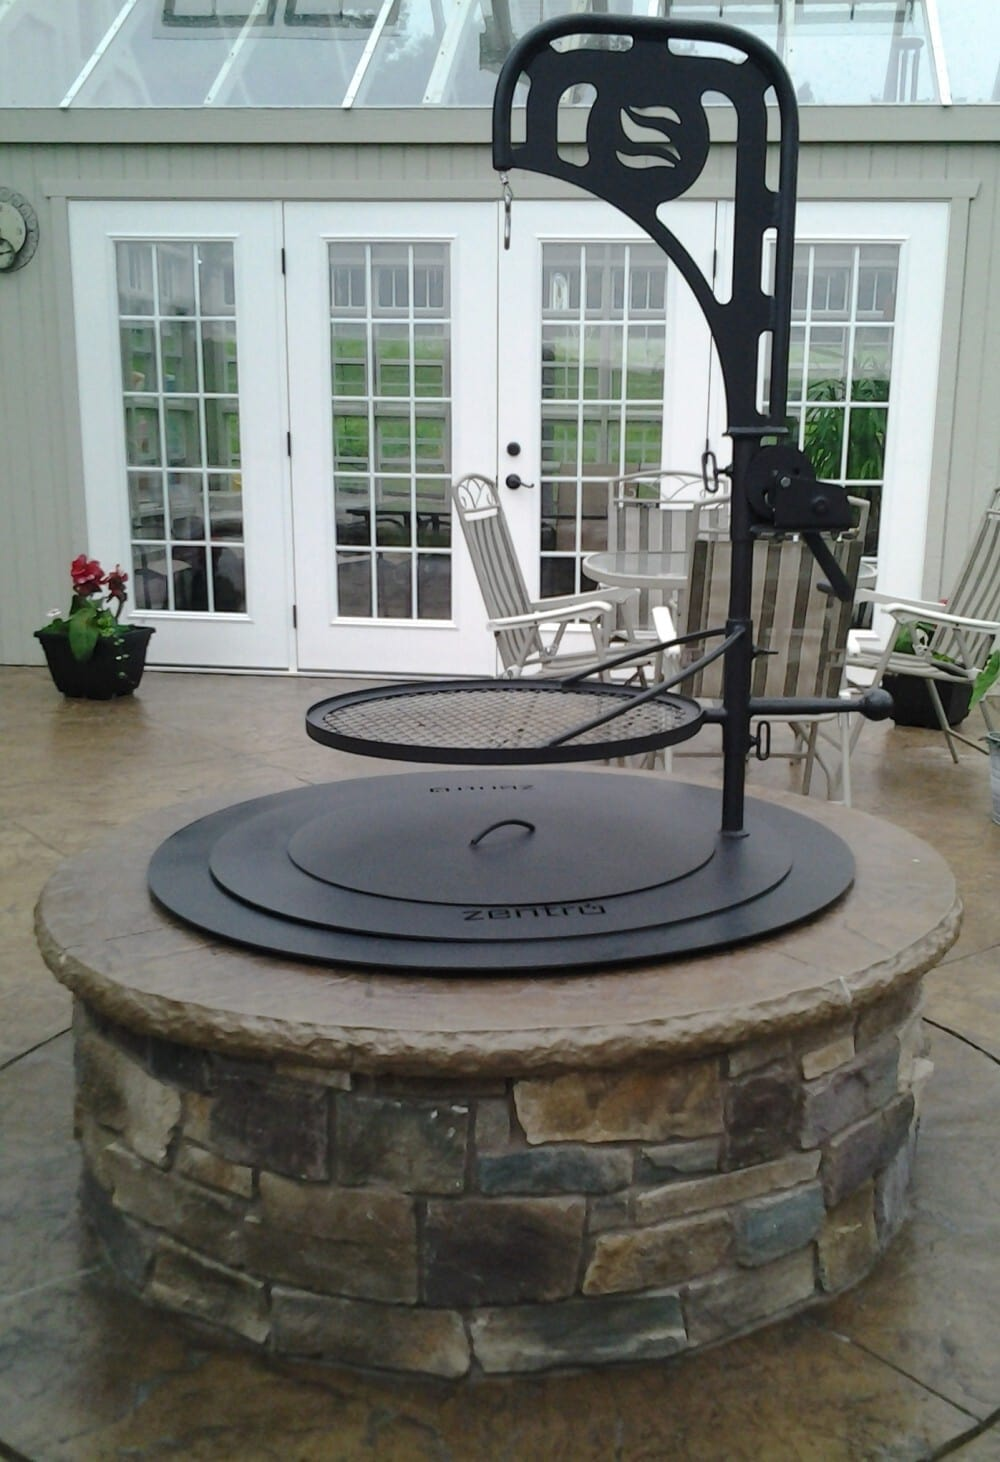 dp above or ground inside sunnydaze duty garden heavy patio liner rings diy outside decor ring lawn pit x fire amazon ca inch in